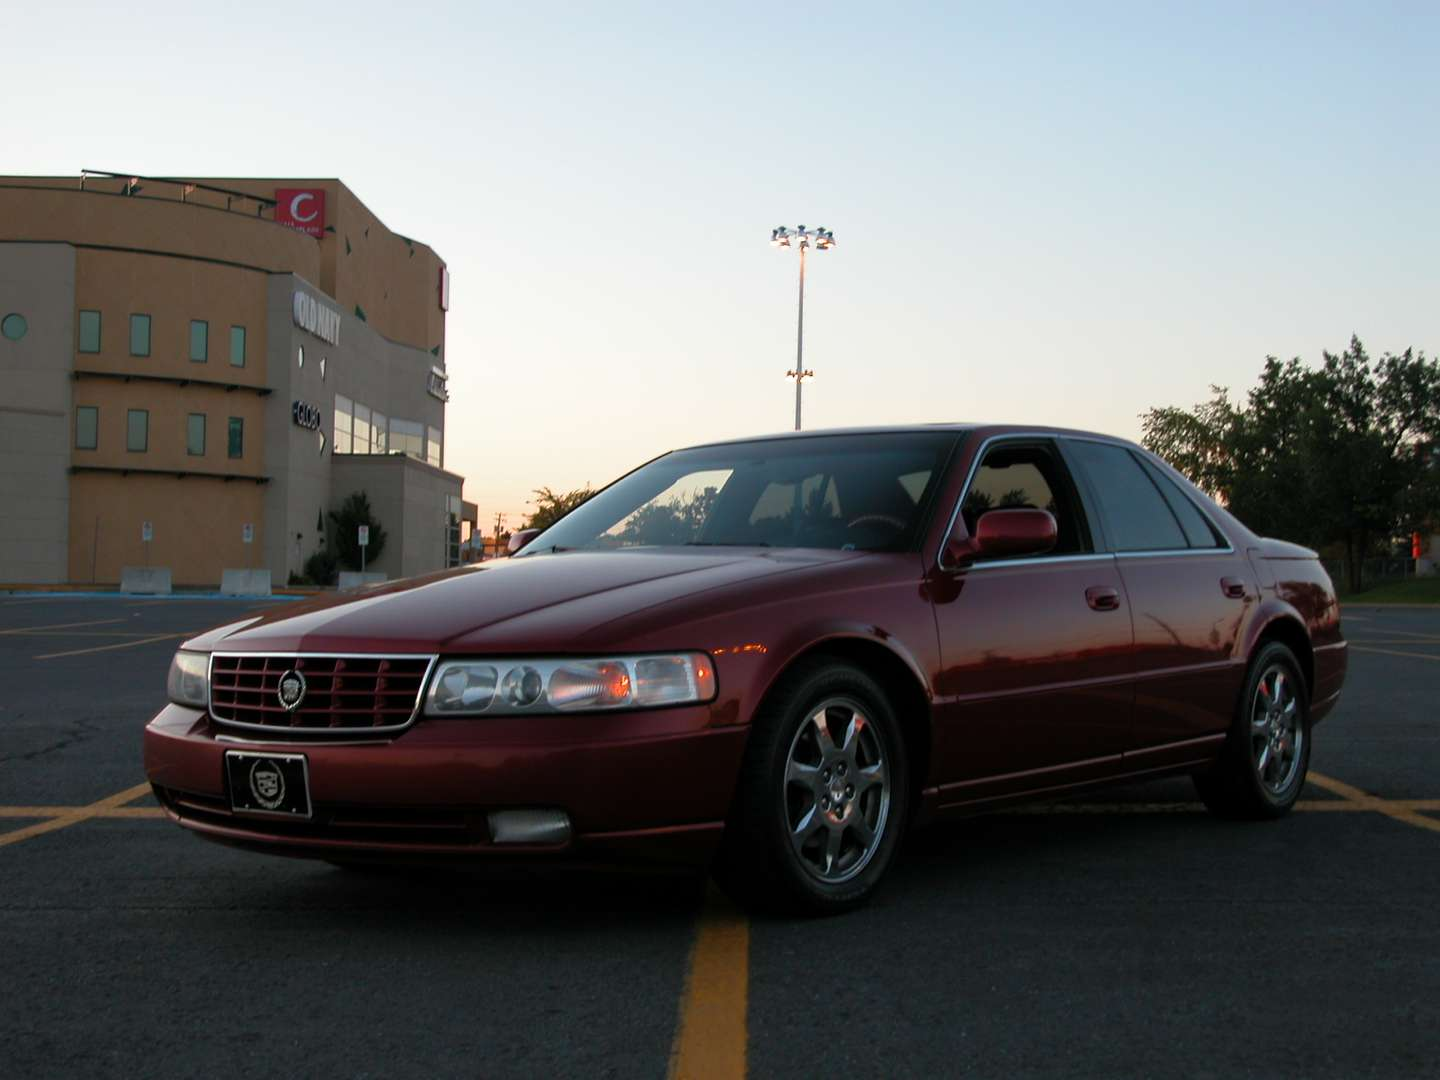 Cadillac Seville STS #7476312